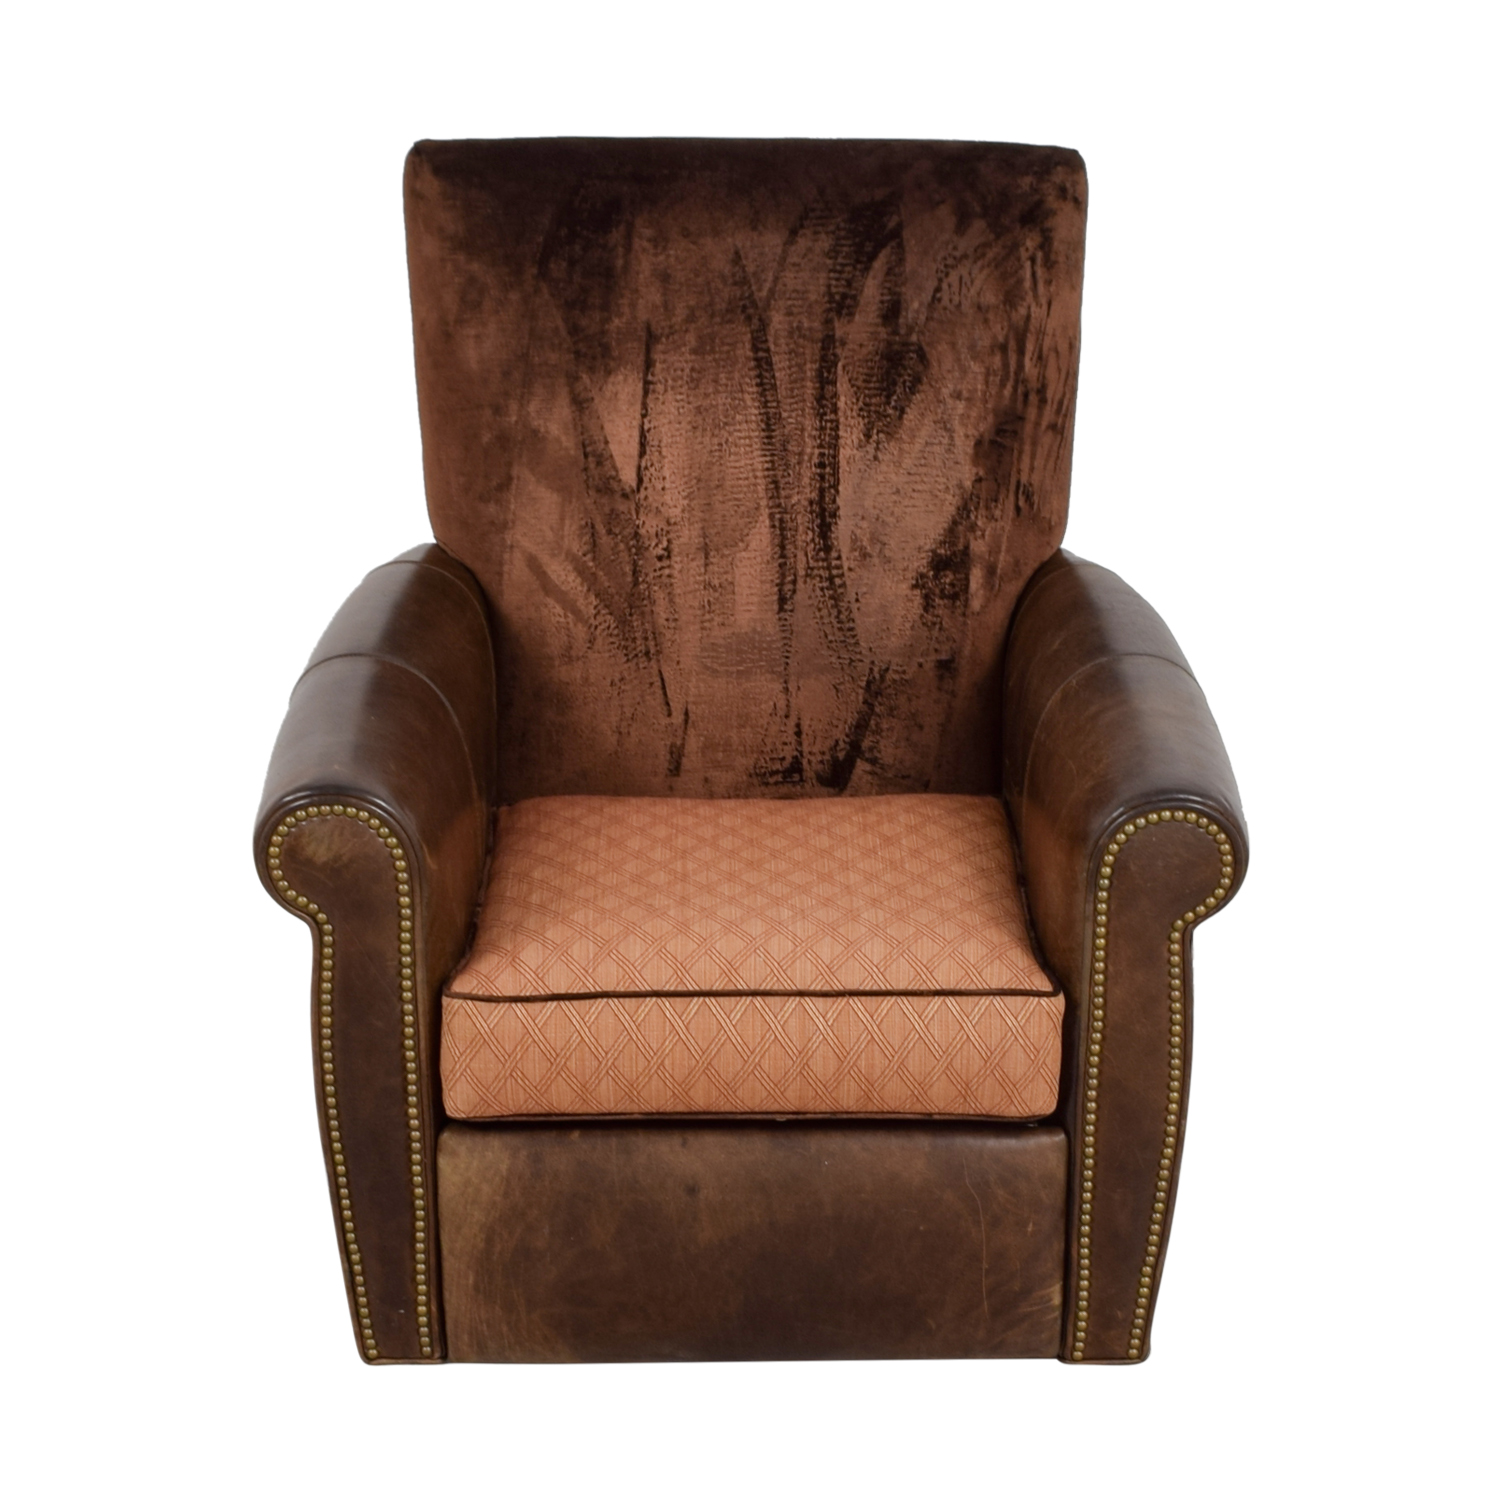 Arhaus Arhaus Brown Leather and Velvet Nailhead Swivel Recliner for sale